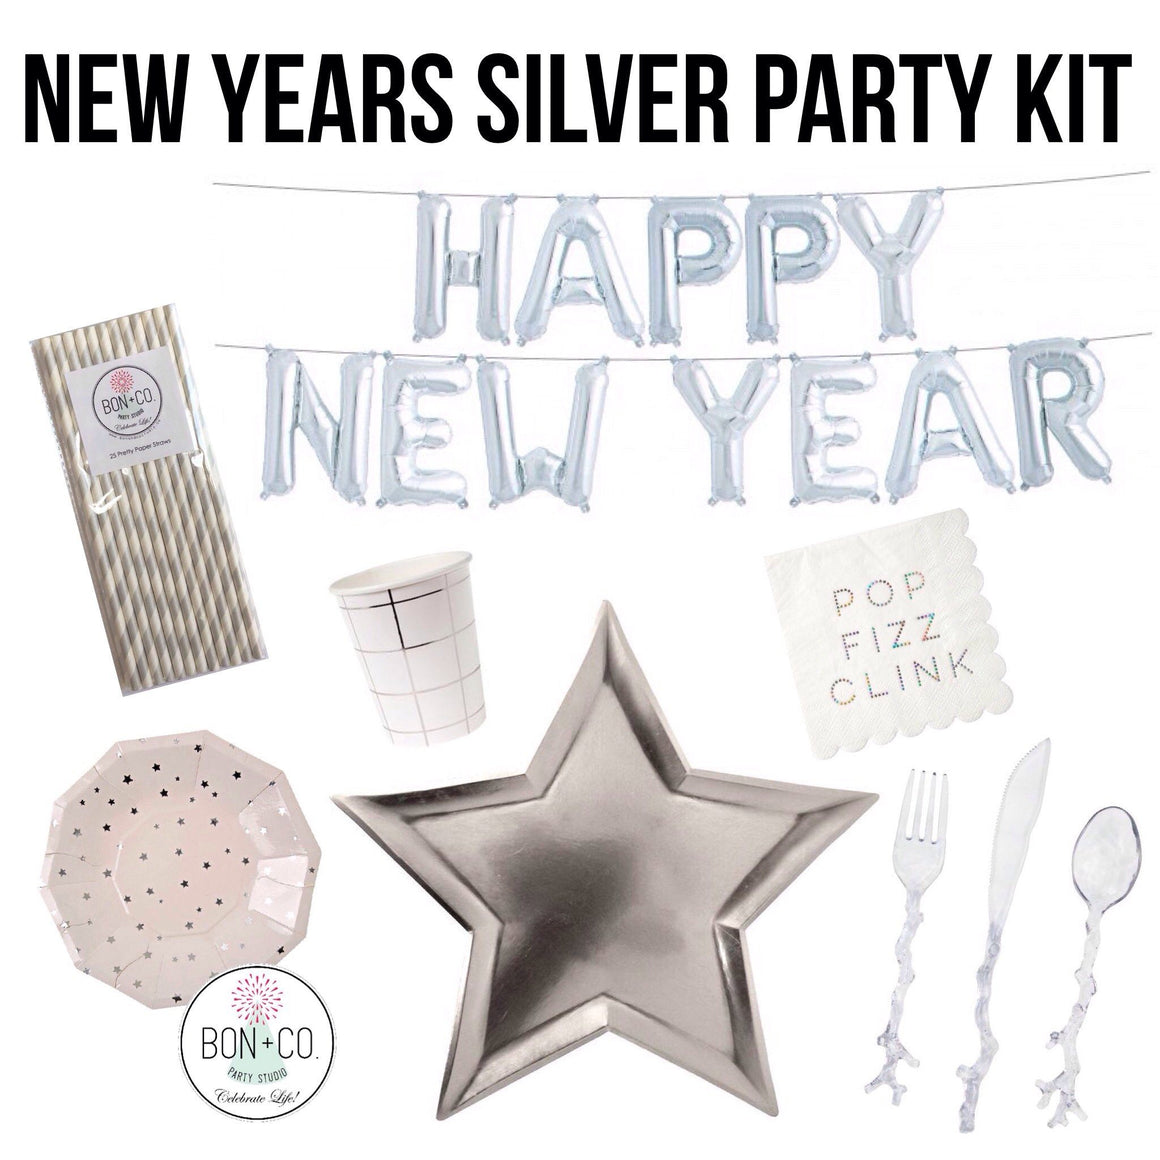 PARTY KIT - NEW YEARS SILVER